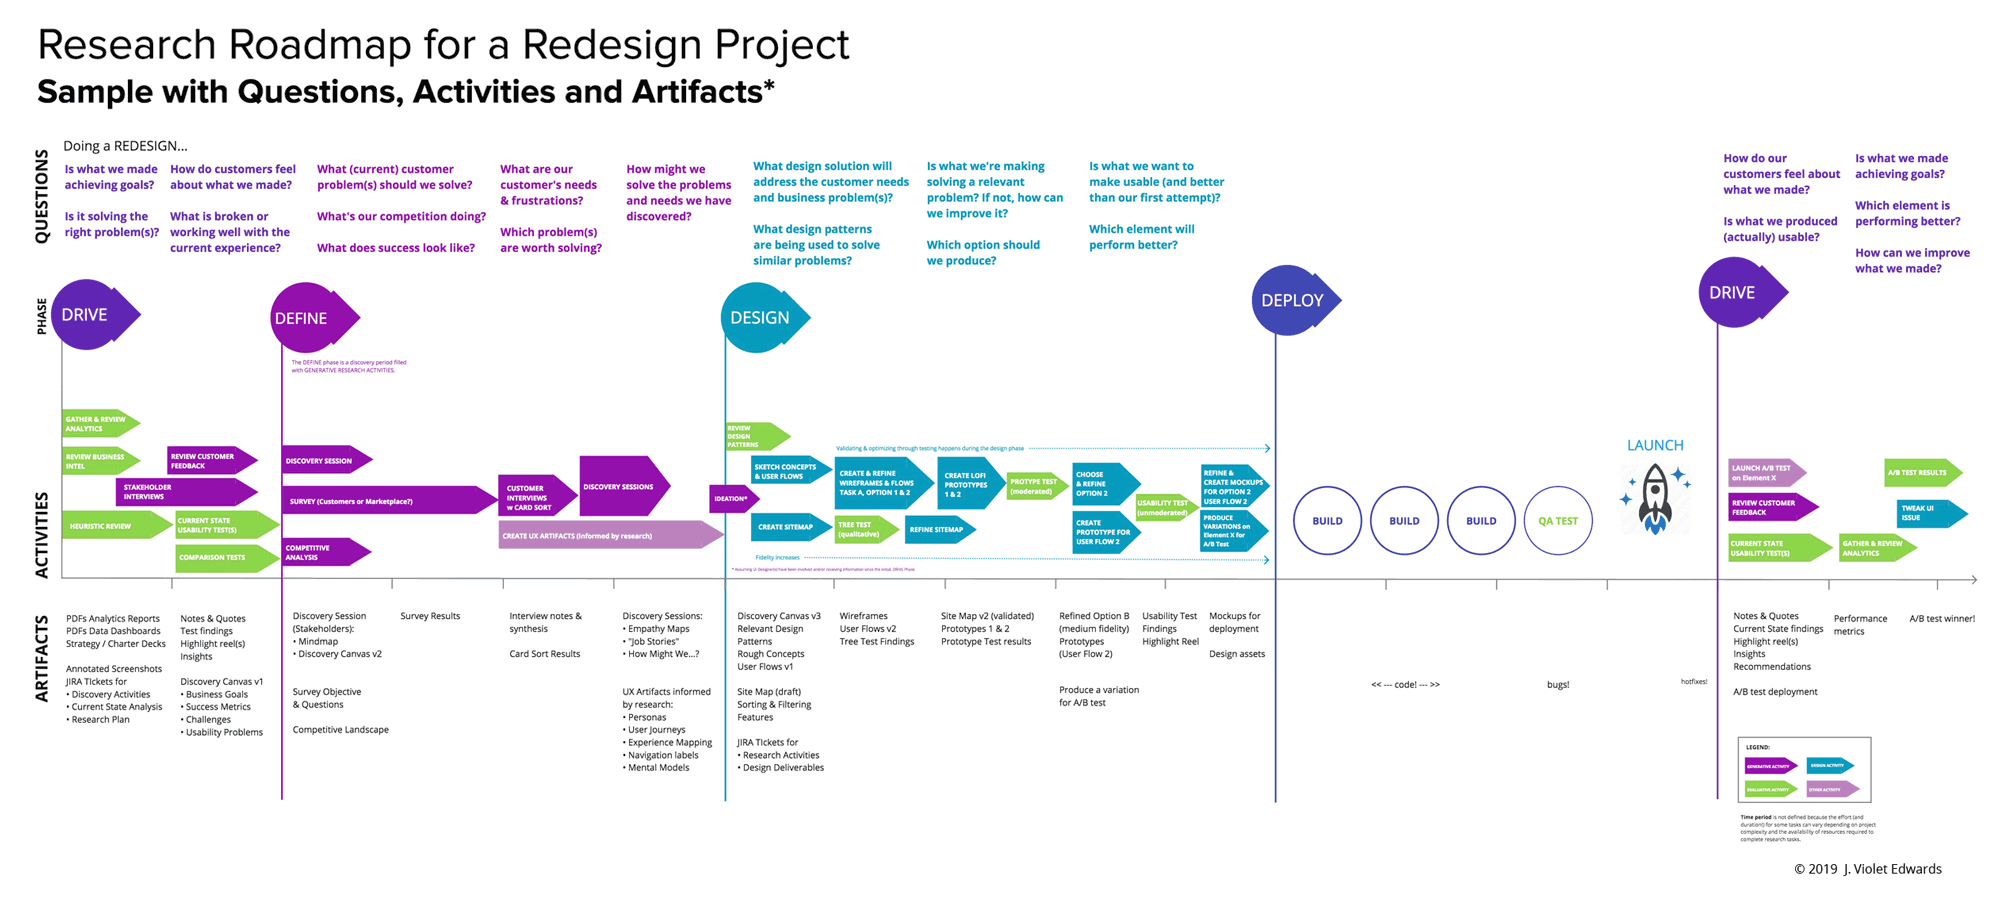 A visual example of the Questions Activities & Artifacts (QAA) UX Research framework showing possible questions, activities and artifacts that are common to many digital redesign projects at each phase. The actual ux research roadmap is determined by the unique needs of each project.